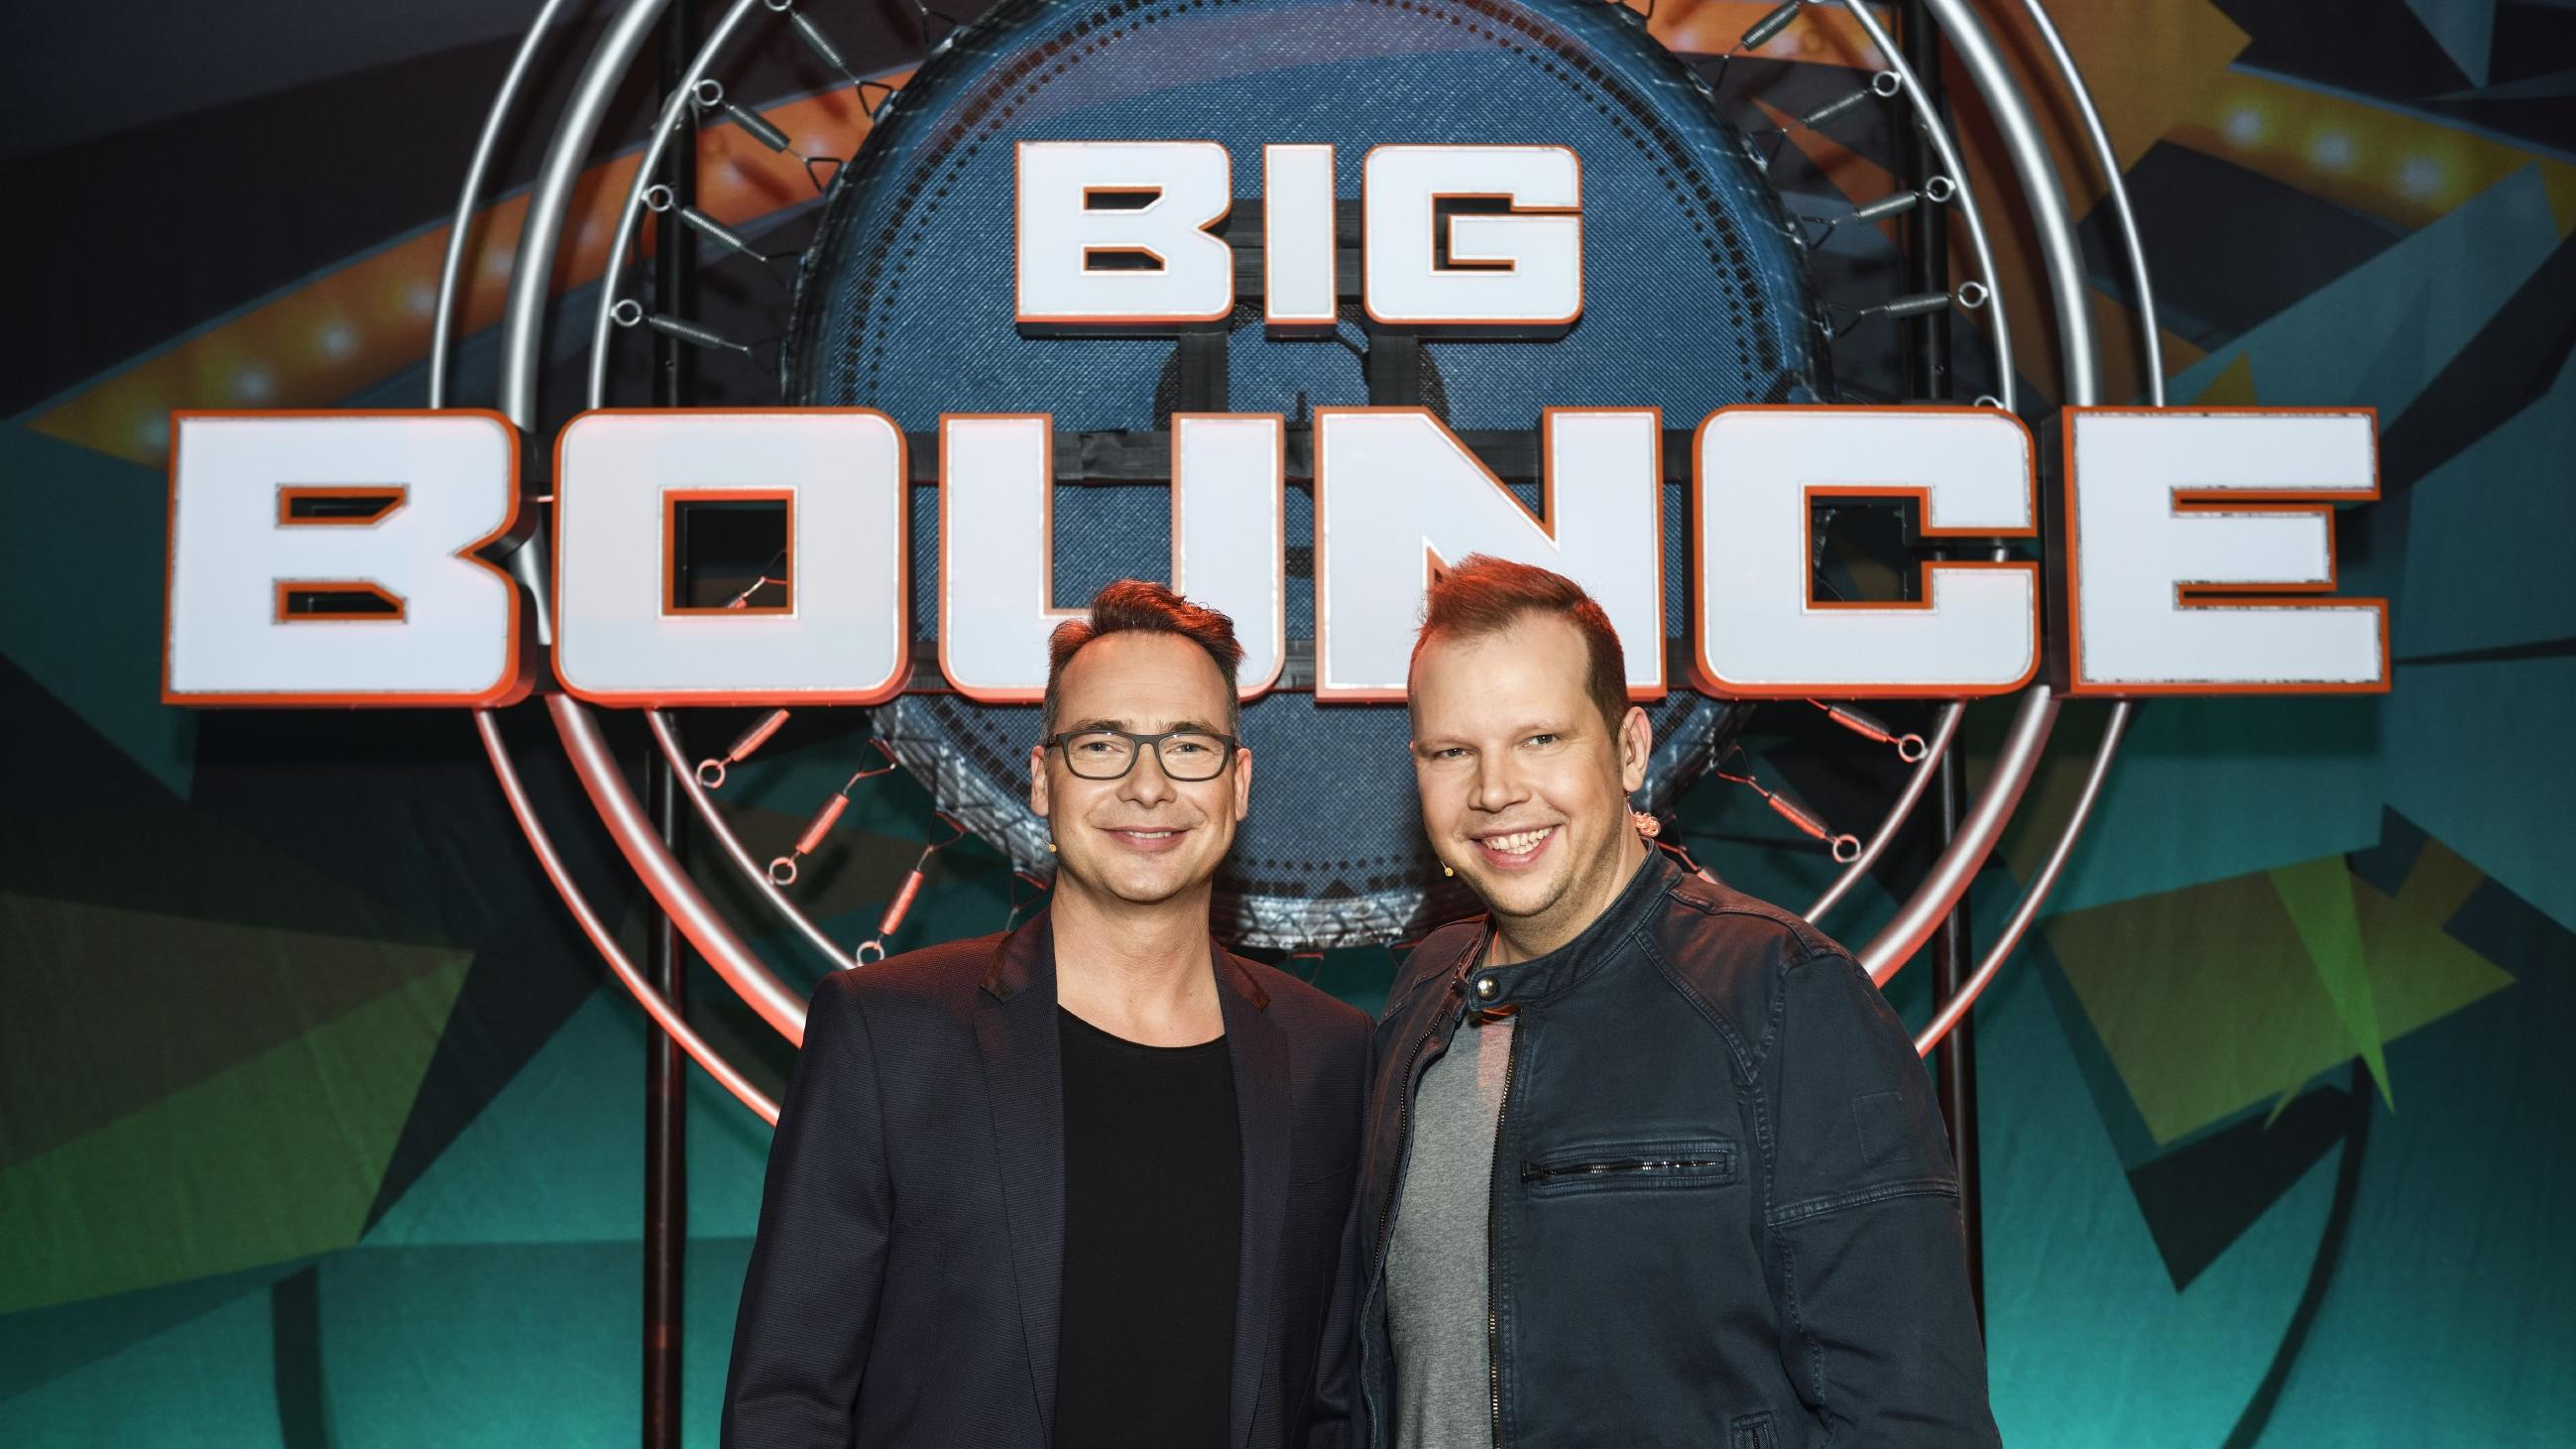 Big bounce die trampolin show bei tv now verpasste for Rtl spiegel tv live